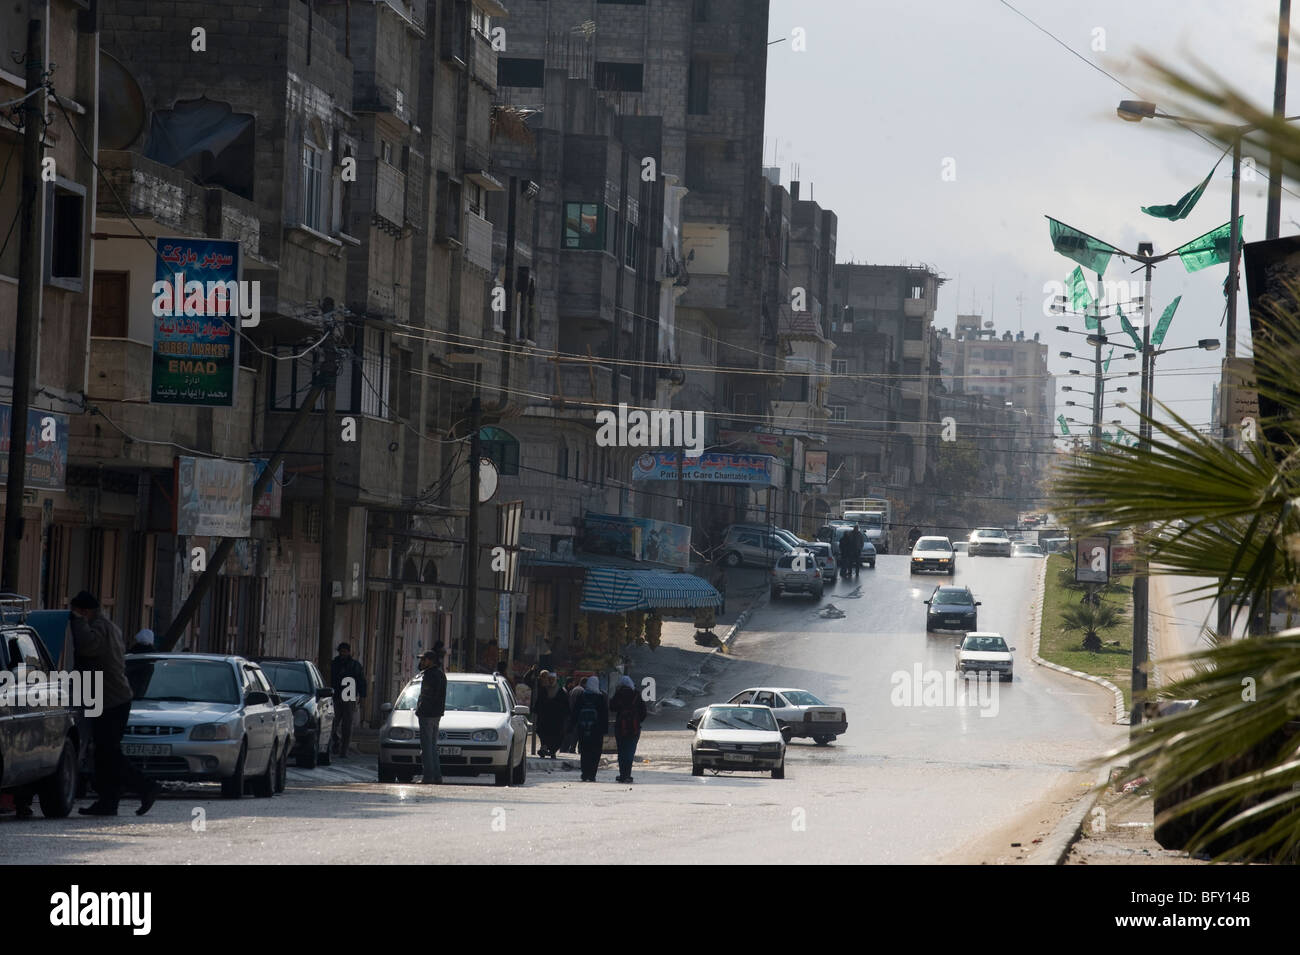 Street scene Gaza Strip. - Stock Image